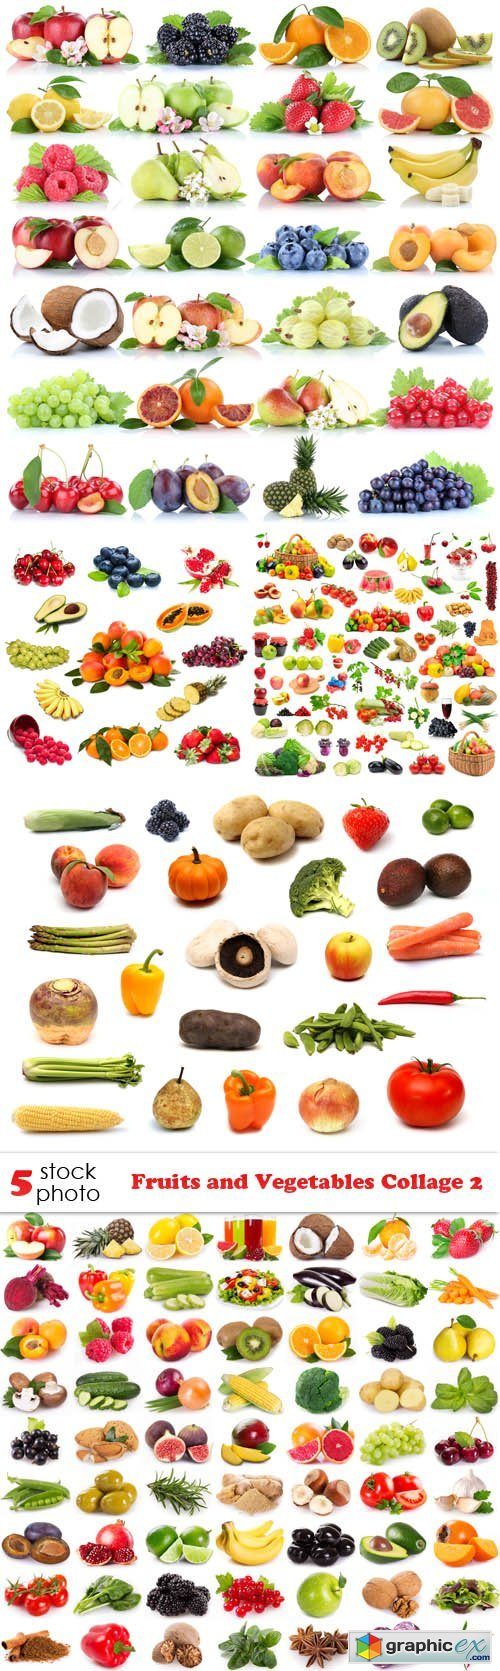 Fruits and Vegetables Collage 2